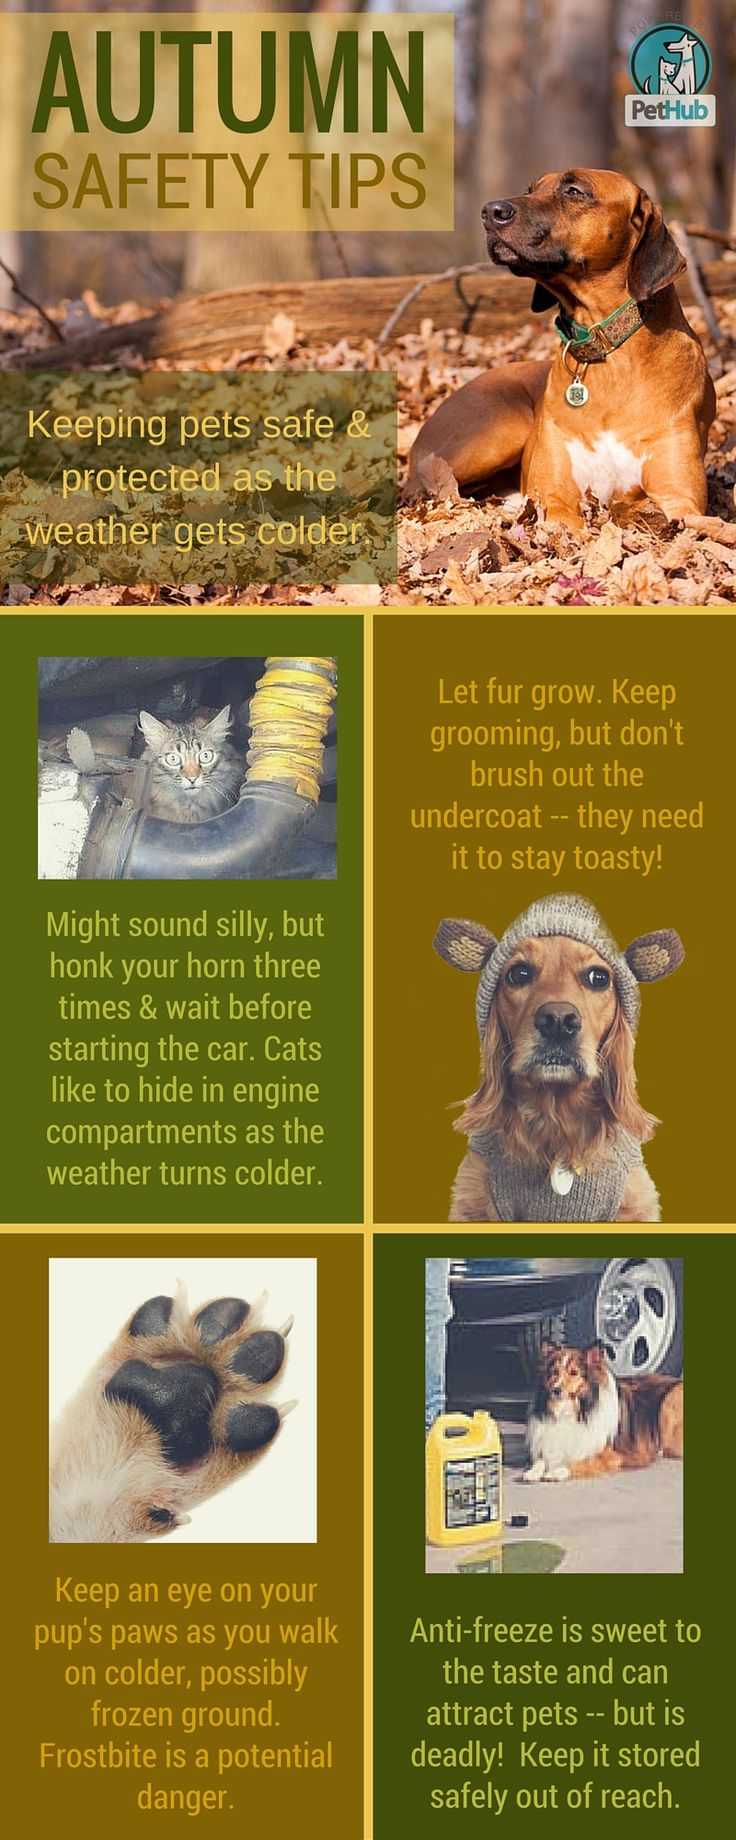 4 Critical Pet Safety Things to Remember as Summer Turns